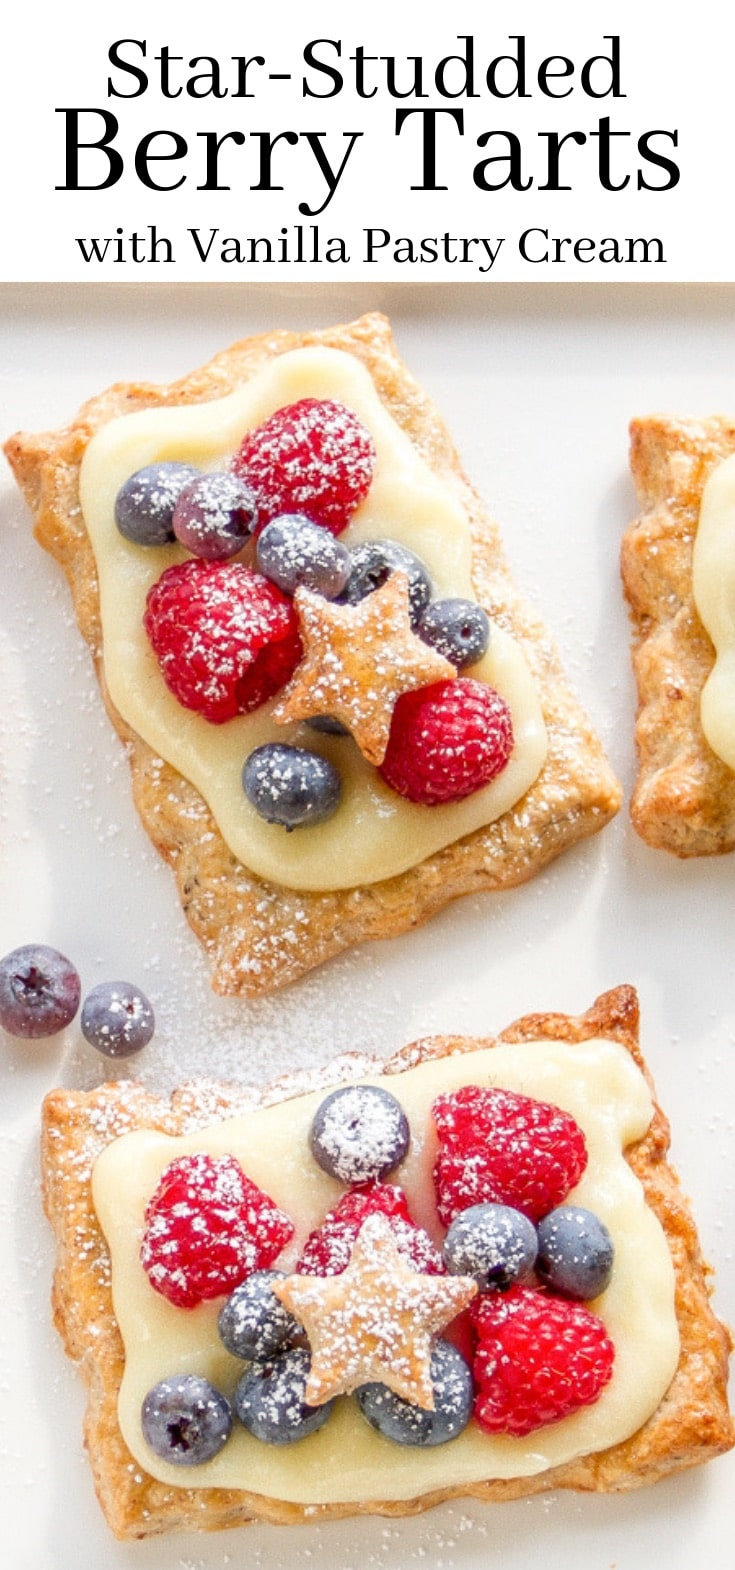 Flaky tarts with vanilla pastry cream and fresh summer berries